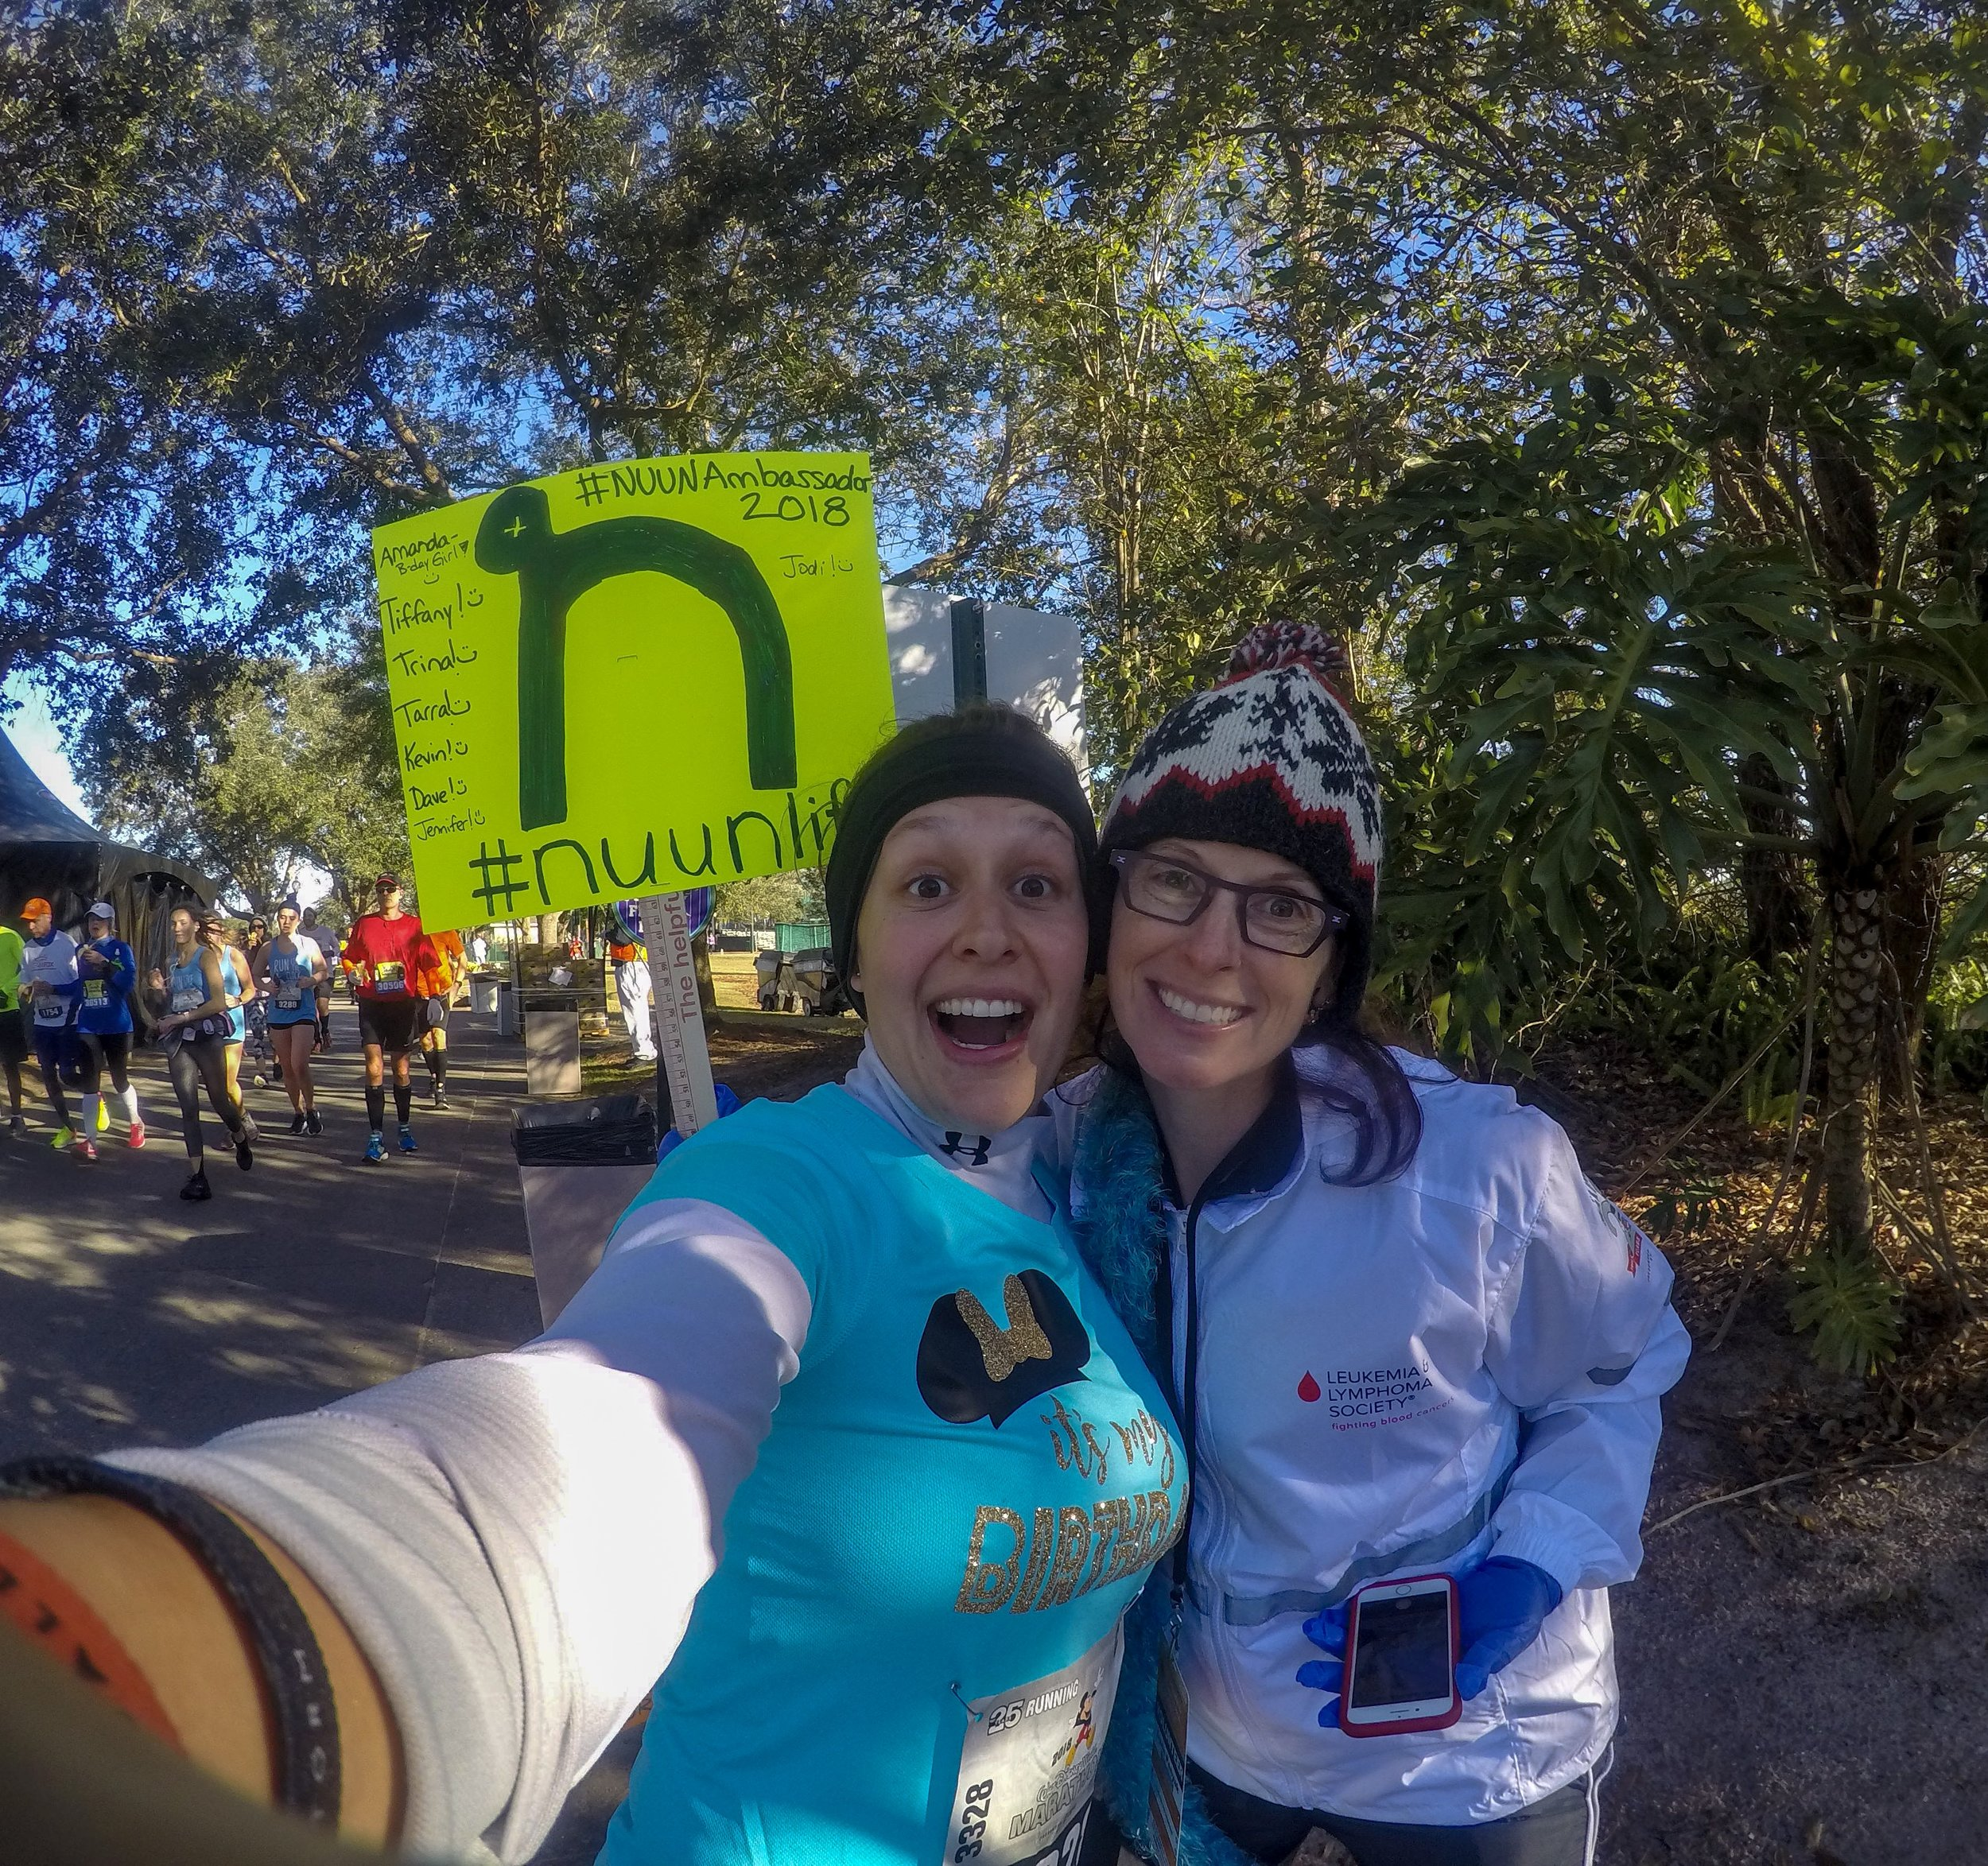 At around mile 19 I ran into fellow Nuunbassador, Lynn (@yogalynnruns) who was volunteering at the hydration station. It's incredible what meeting a stranger who is also a huge fan of running, and your sport drink of choice Nuun, can do for the runner hitting the wall. She had added my name to the team sign and it was just such an incredible experience to get to share a moment of comraderie in the middle of a race. And at the end of the day, without Honey Stinger gel and waffles to fuel me and Nuun to keep me hydrated, I would not have been capable of crossing the finish line an entire 30 minutes faster than Chicago just three months prior.